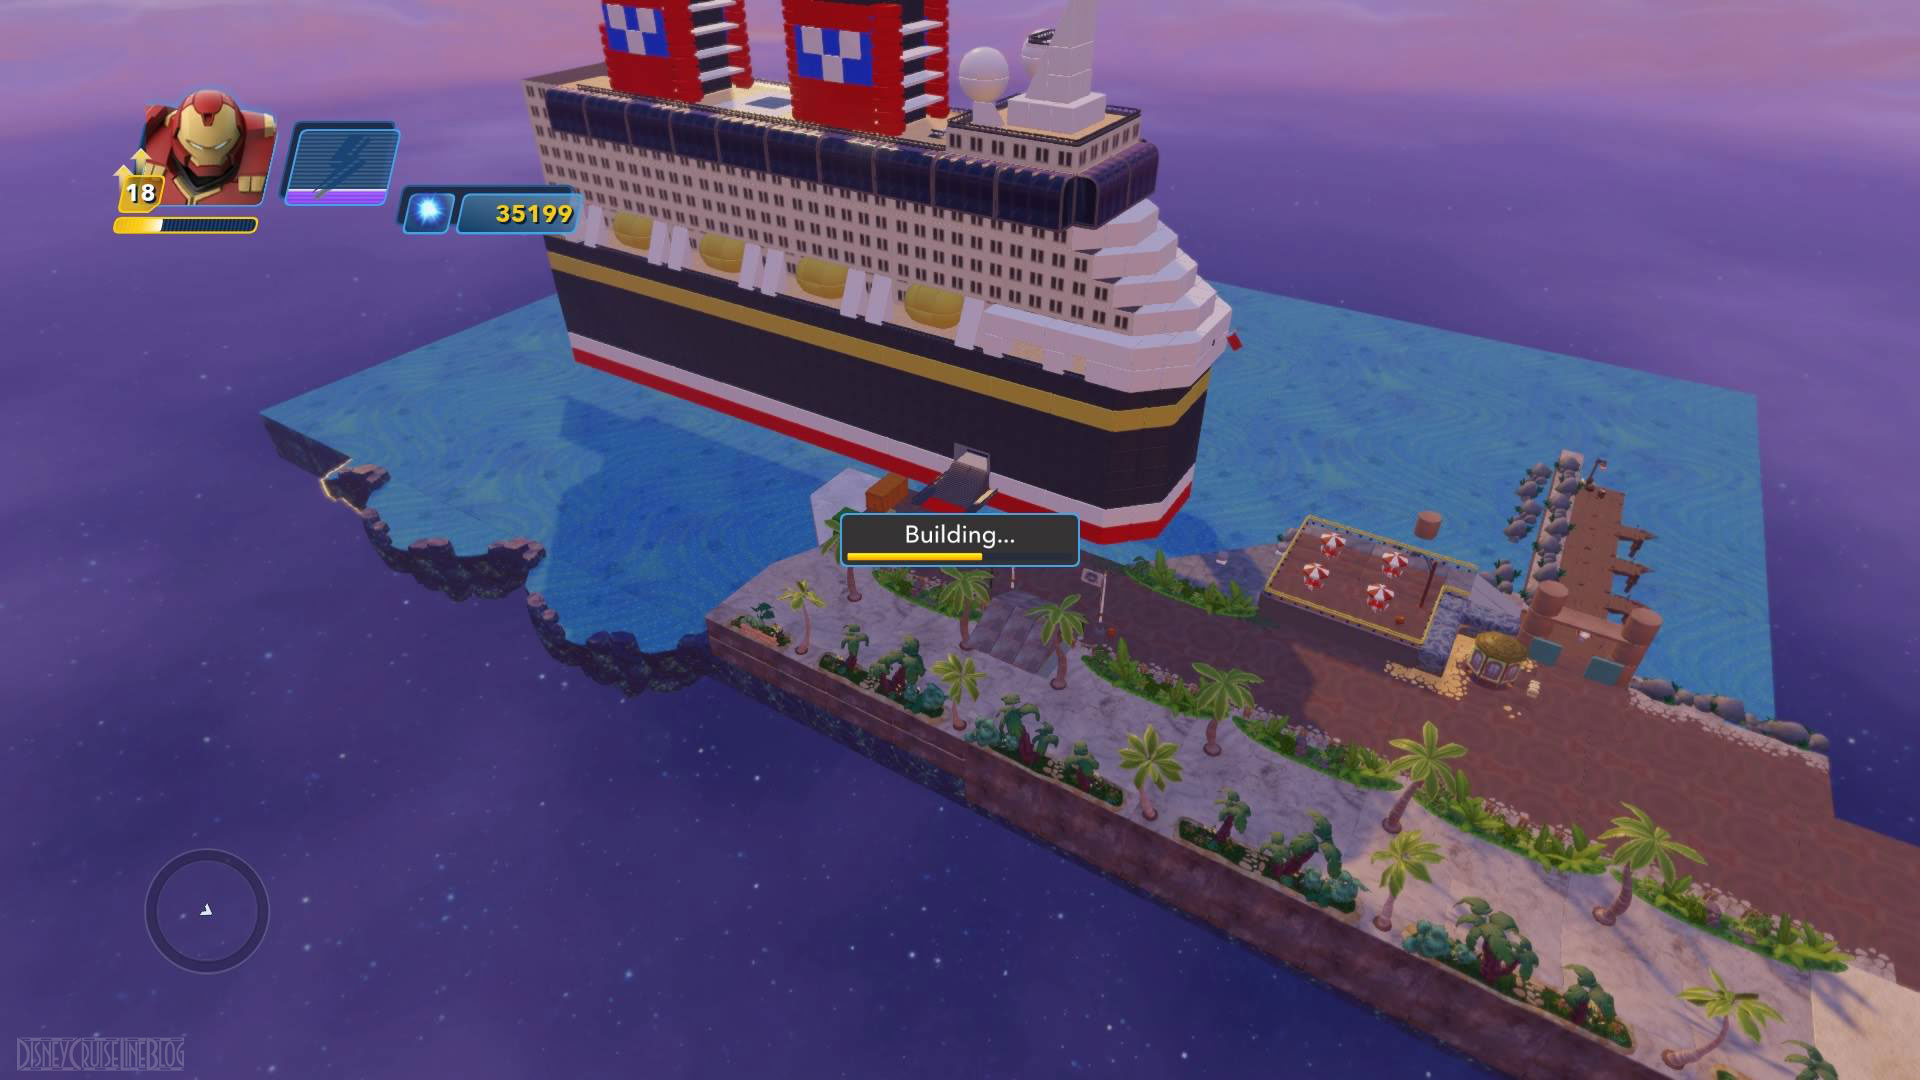 First Look At The New Disney Dream Disney Infinity Play Area In - Disney cruise ship toy